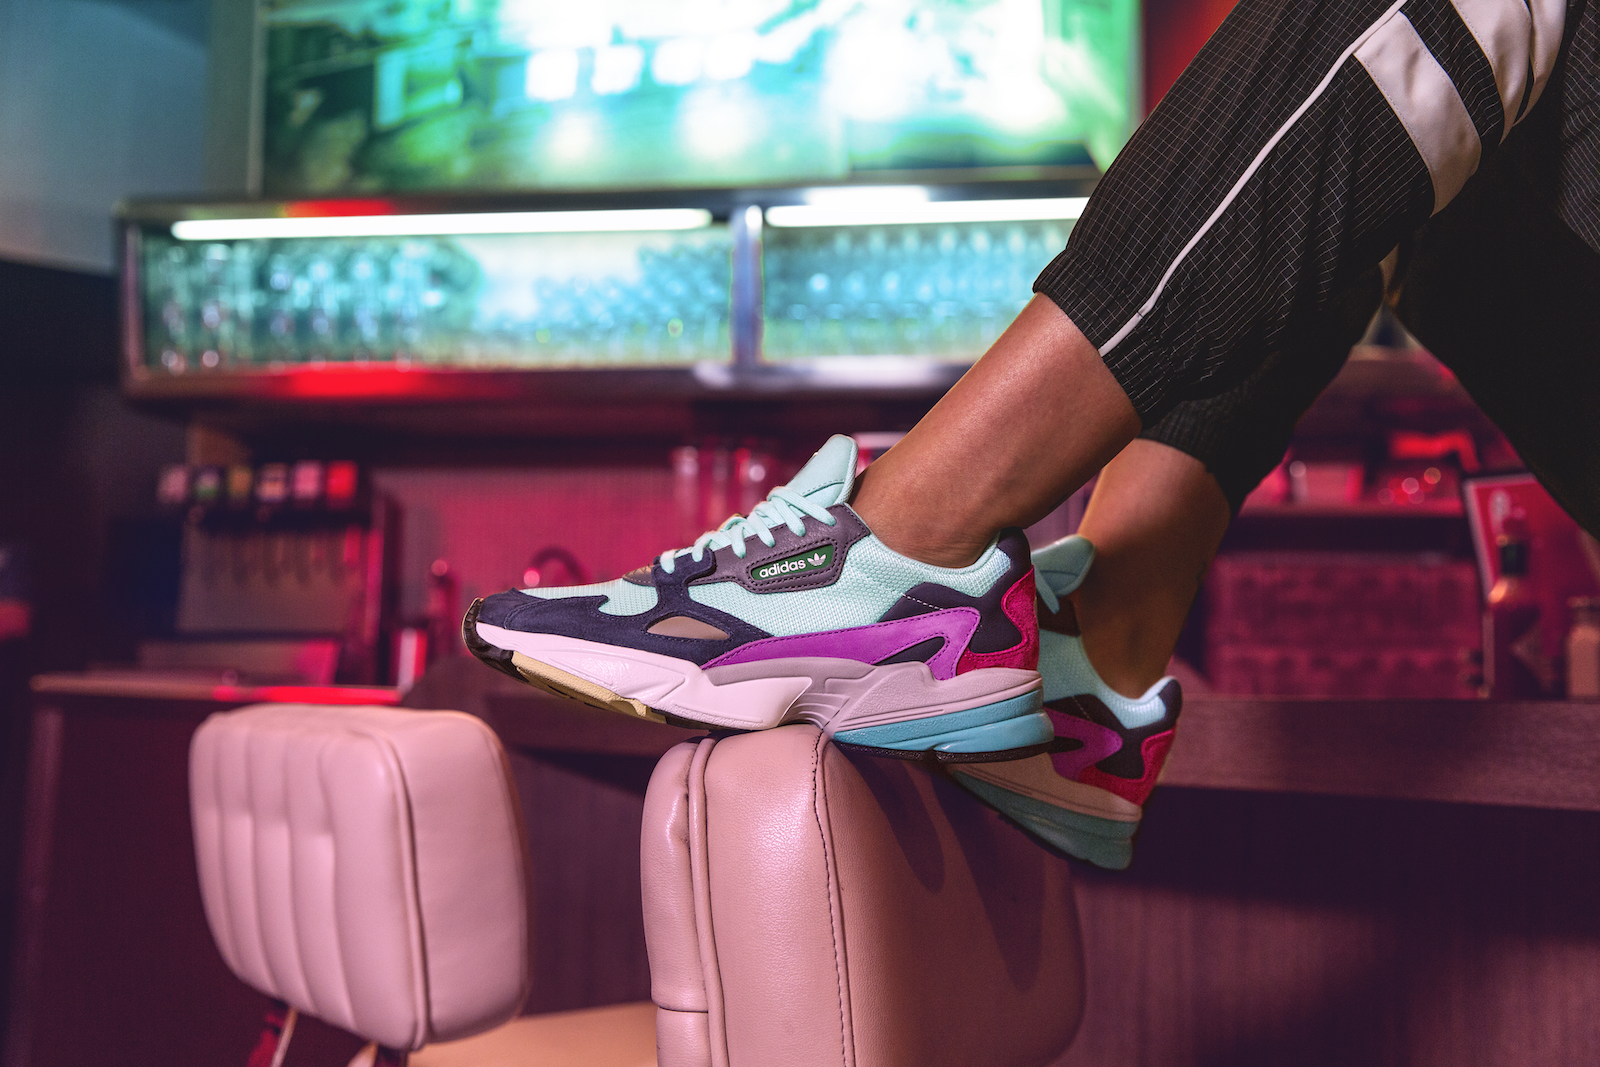 Closeup of a pair of Falcon sneakers on a model sitting on the diner counter, feet resting on the pink, leather backrest of a stool.